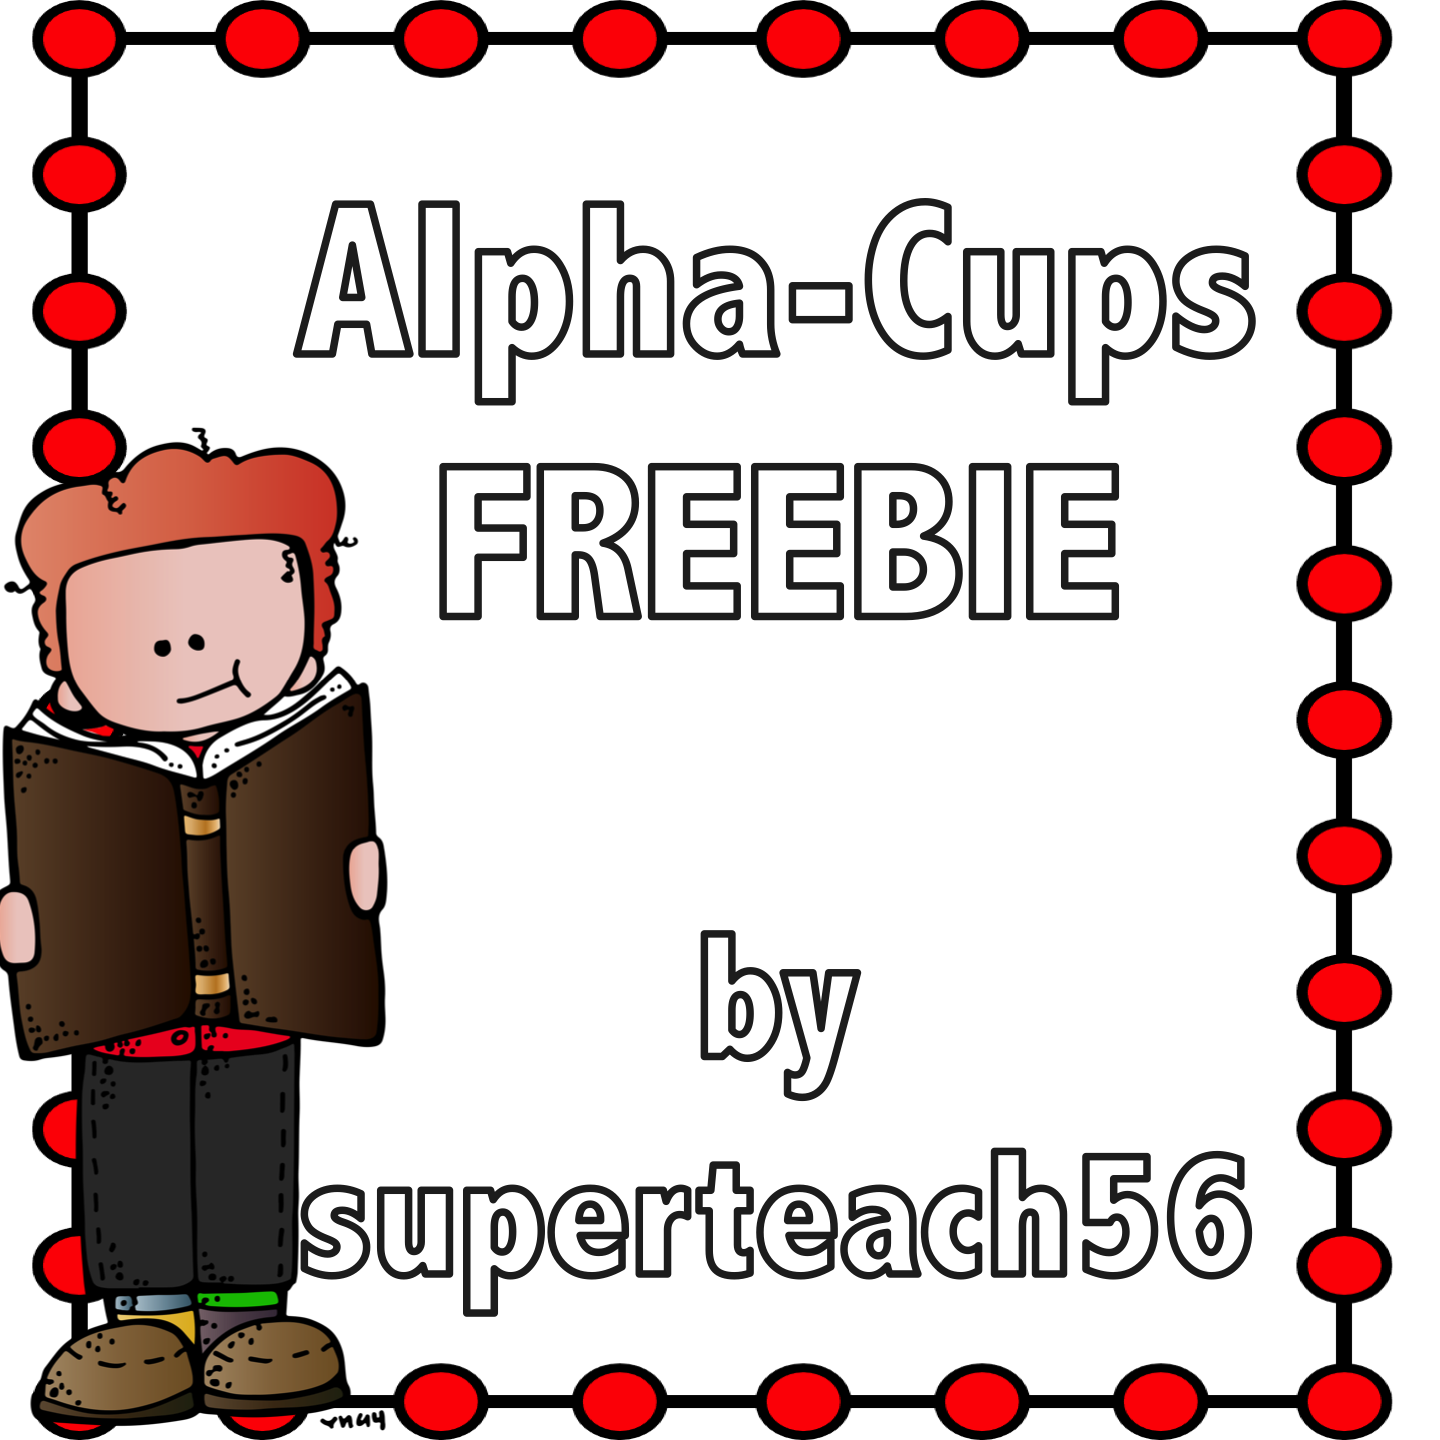 ALPHA CUP FREEBIES